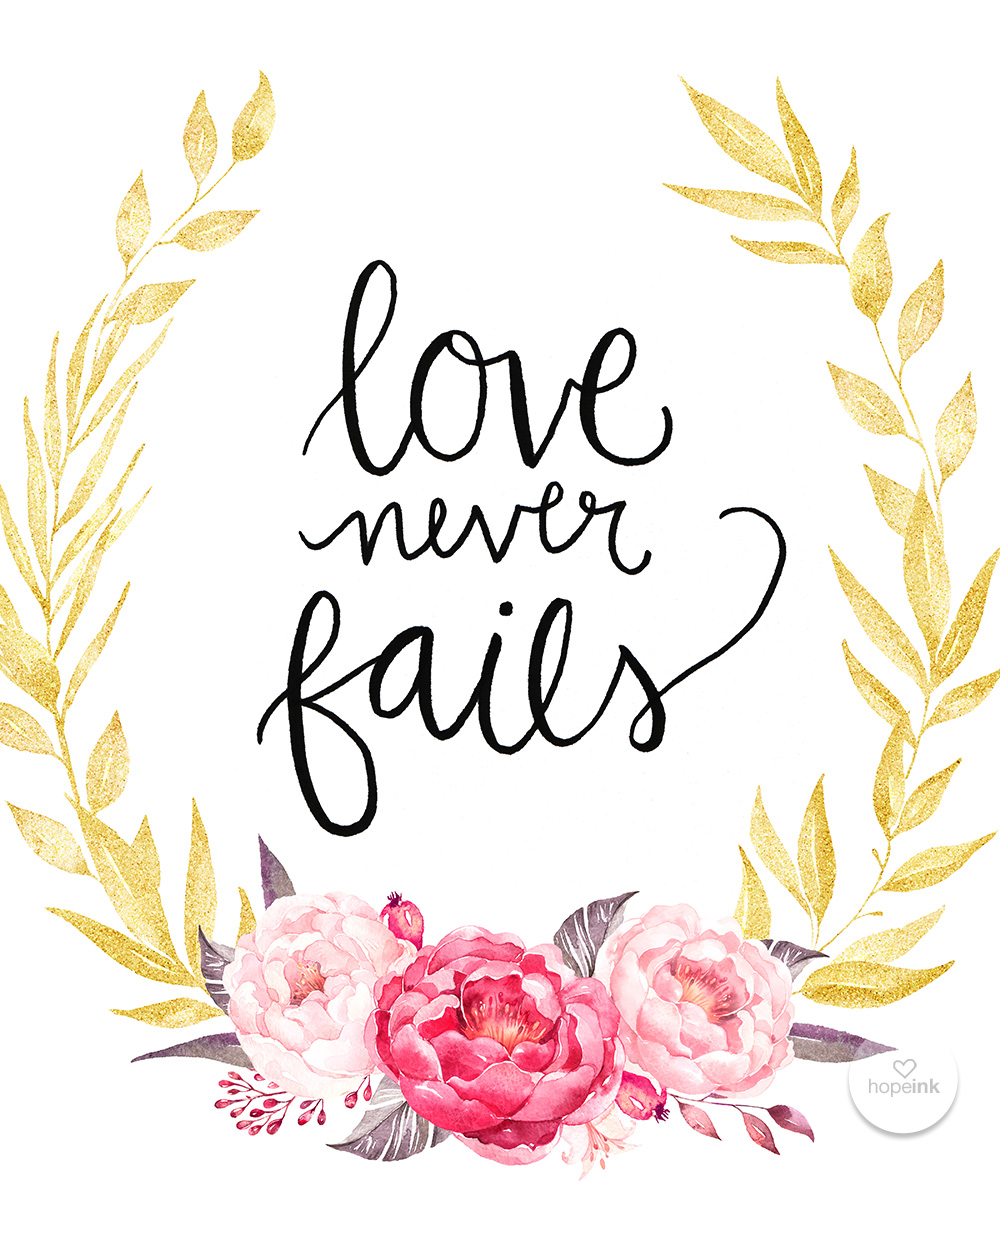 Love Never Fails | Hand Lettered Scripture Art | Hope Ink.jpg